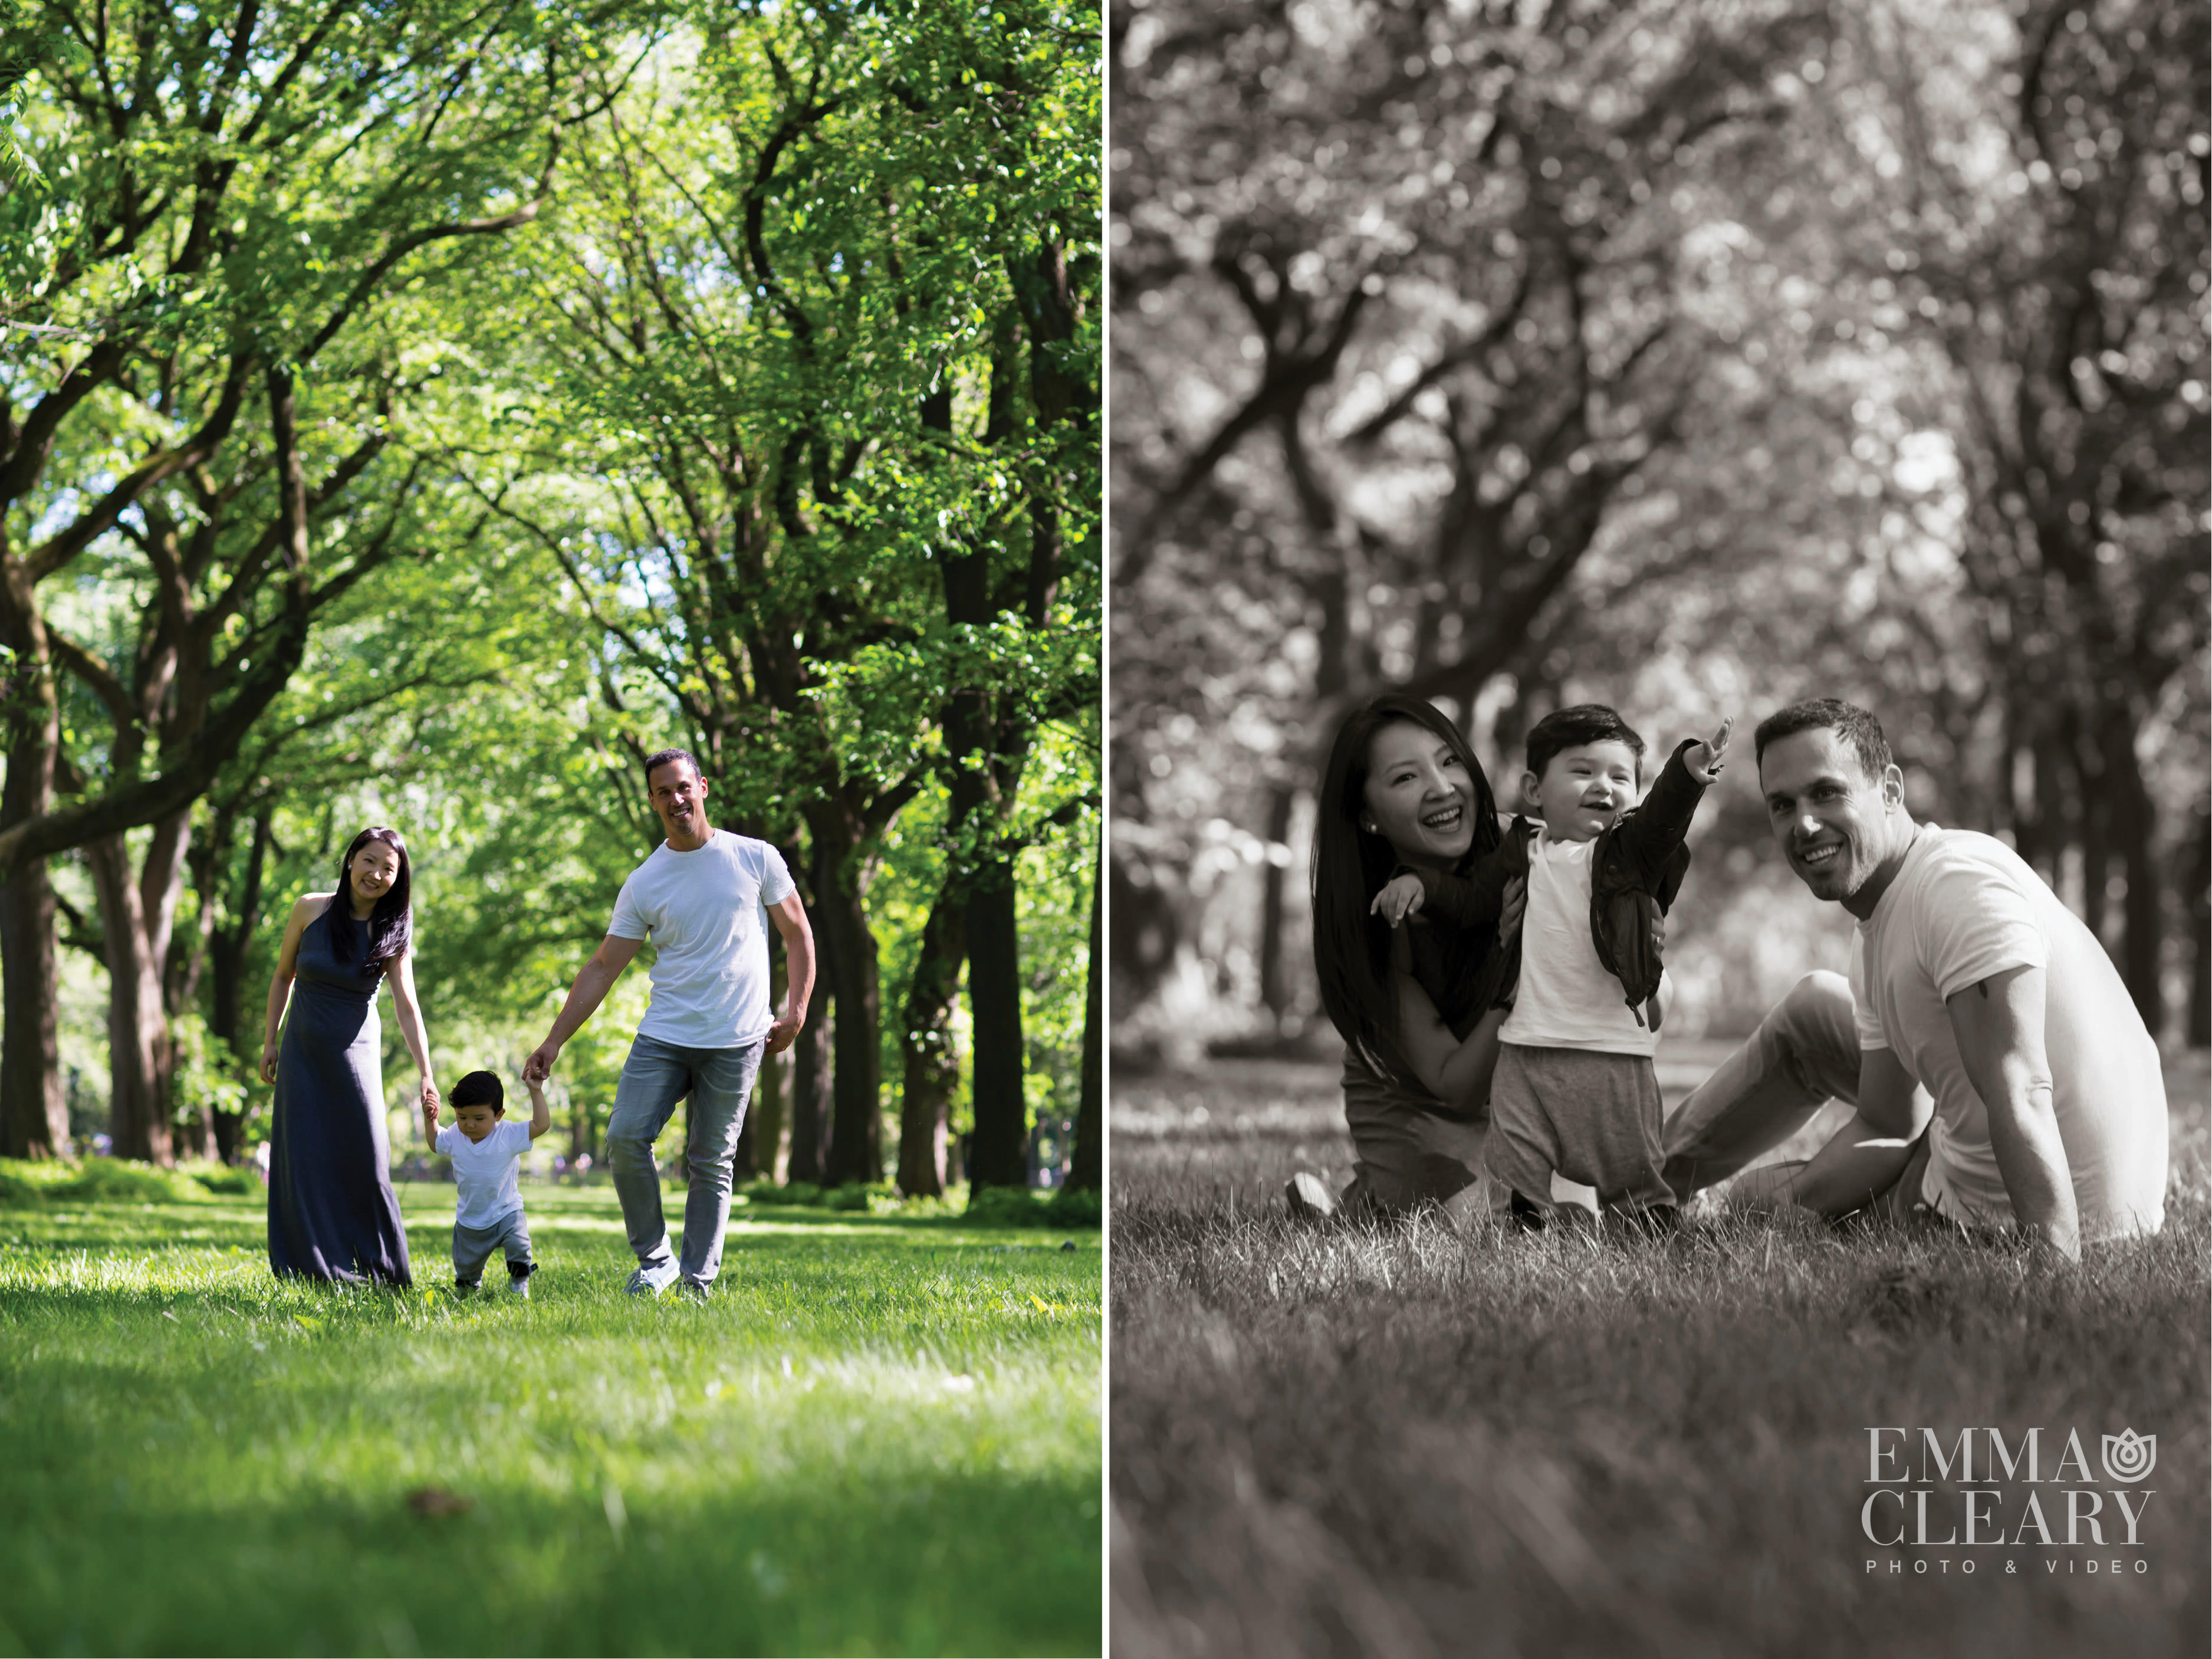 Emma_cleary_photography family shoot central park8